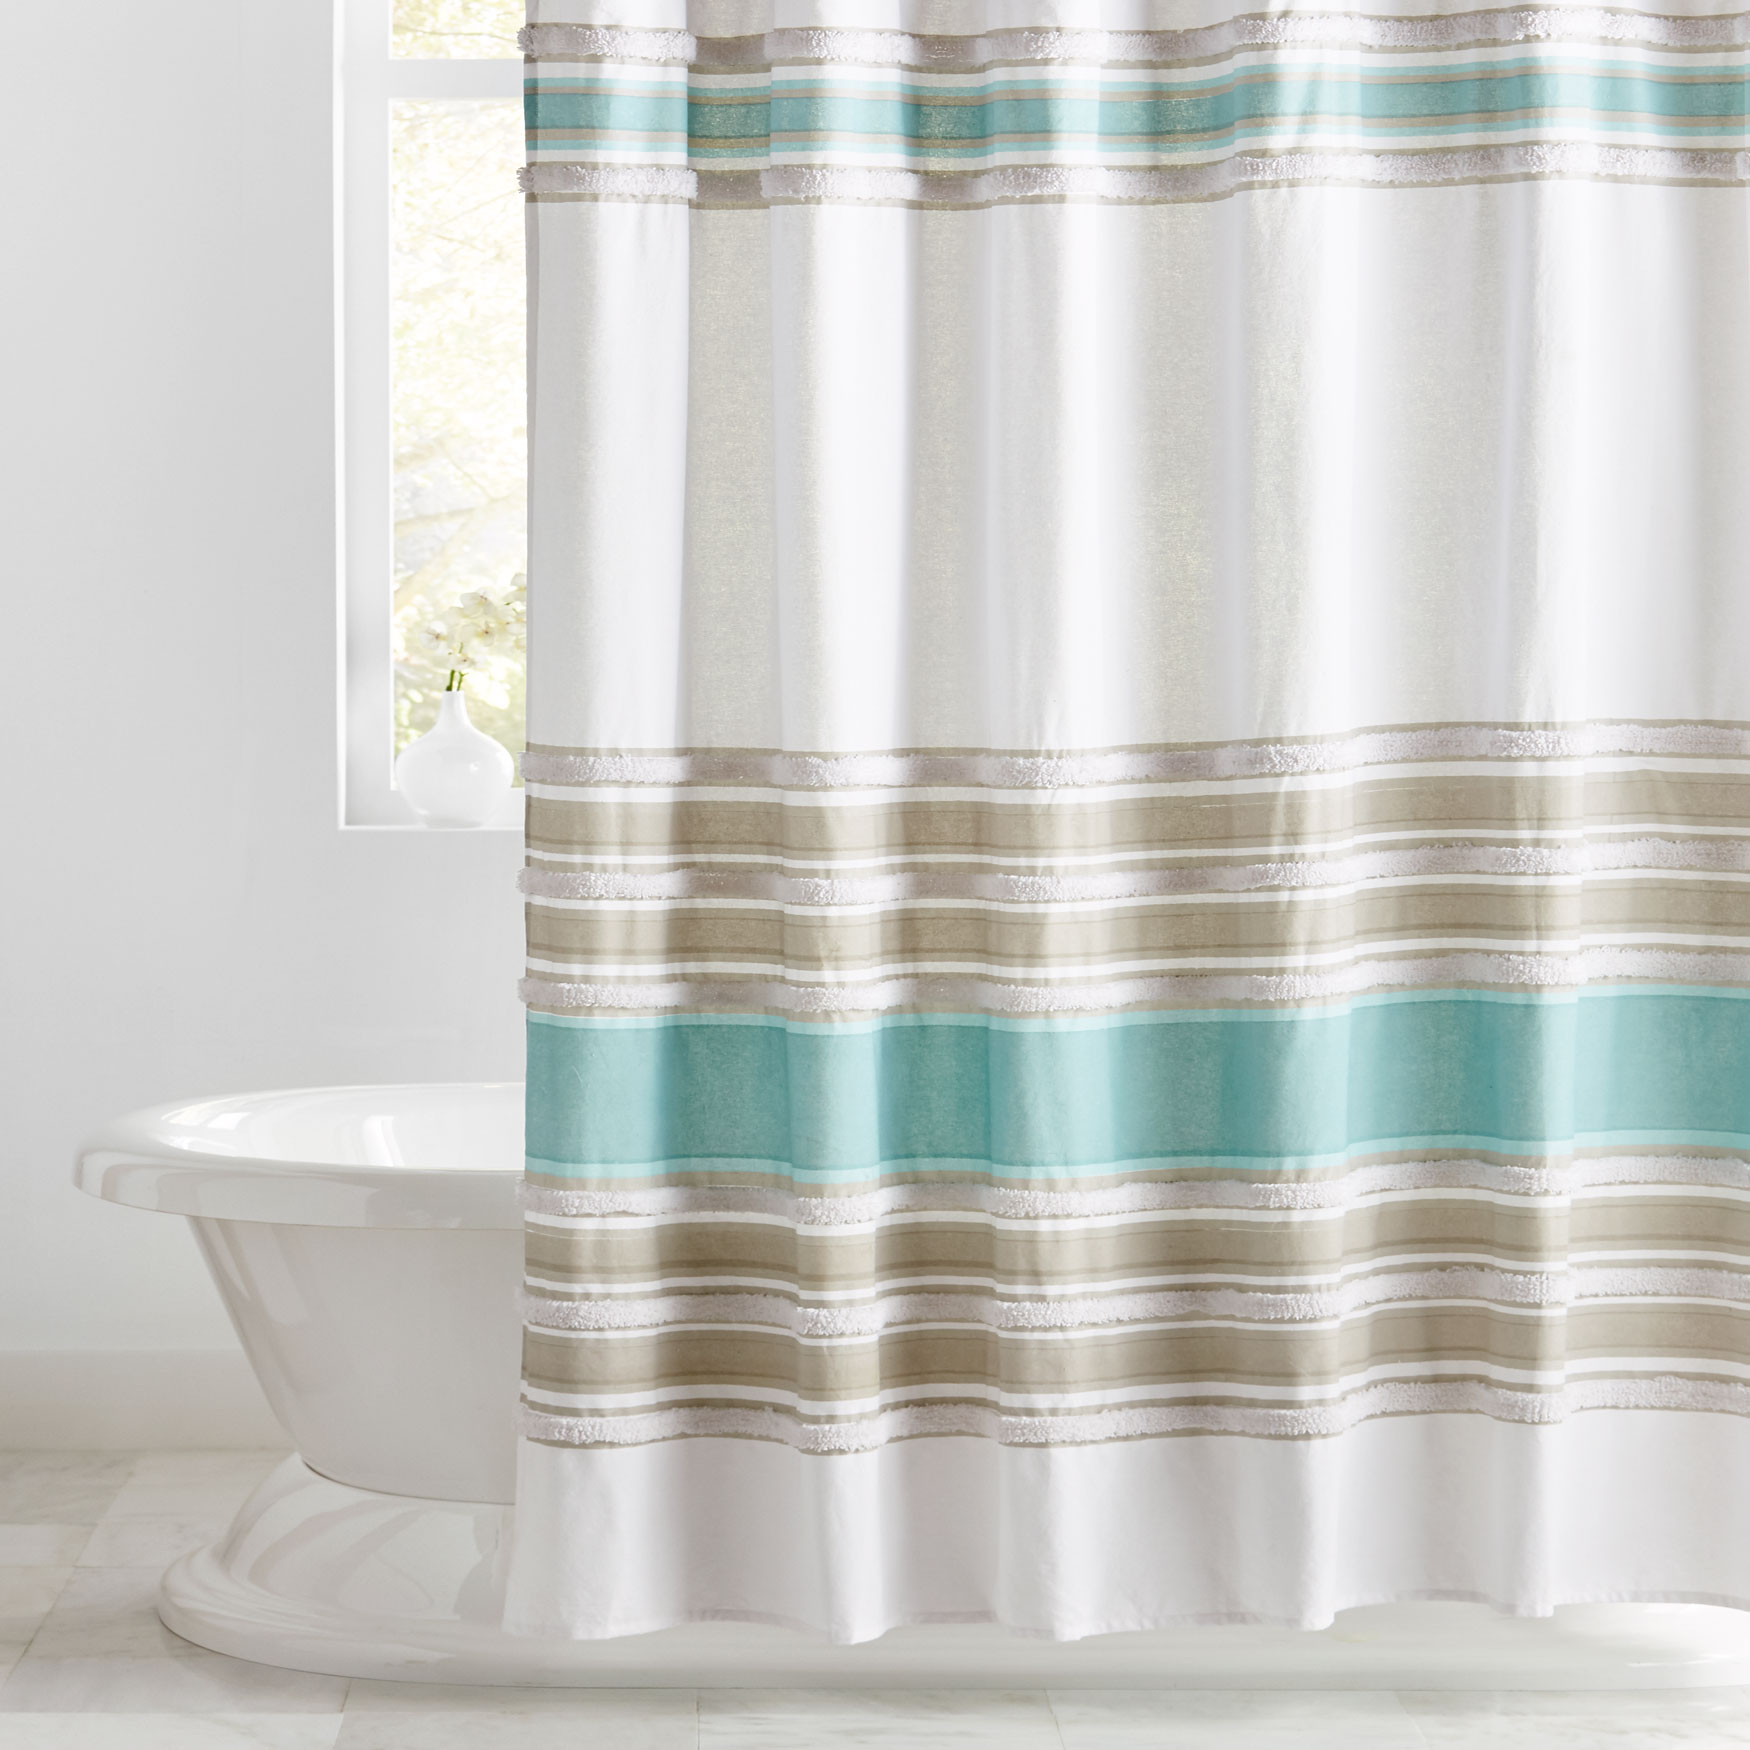 Merlin Cotton Tufted Shower Curtain, SEAFOAM